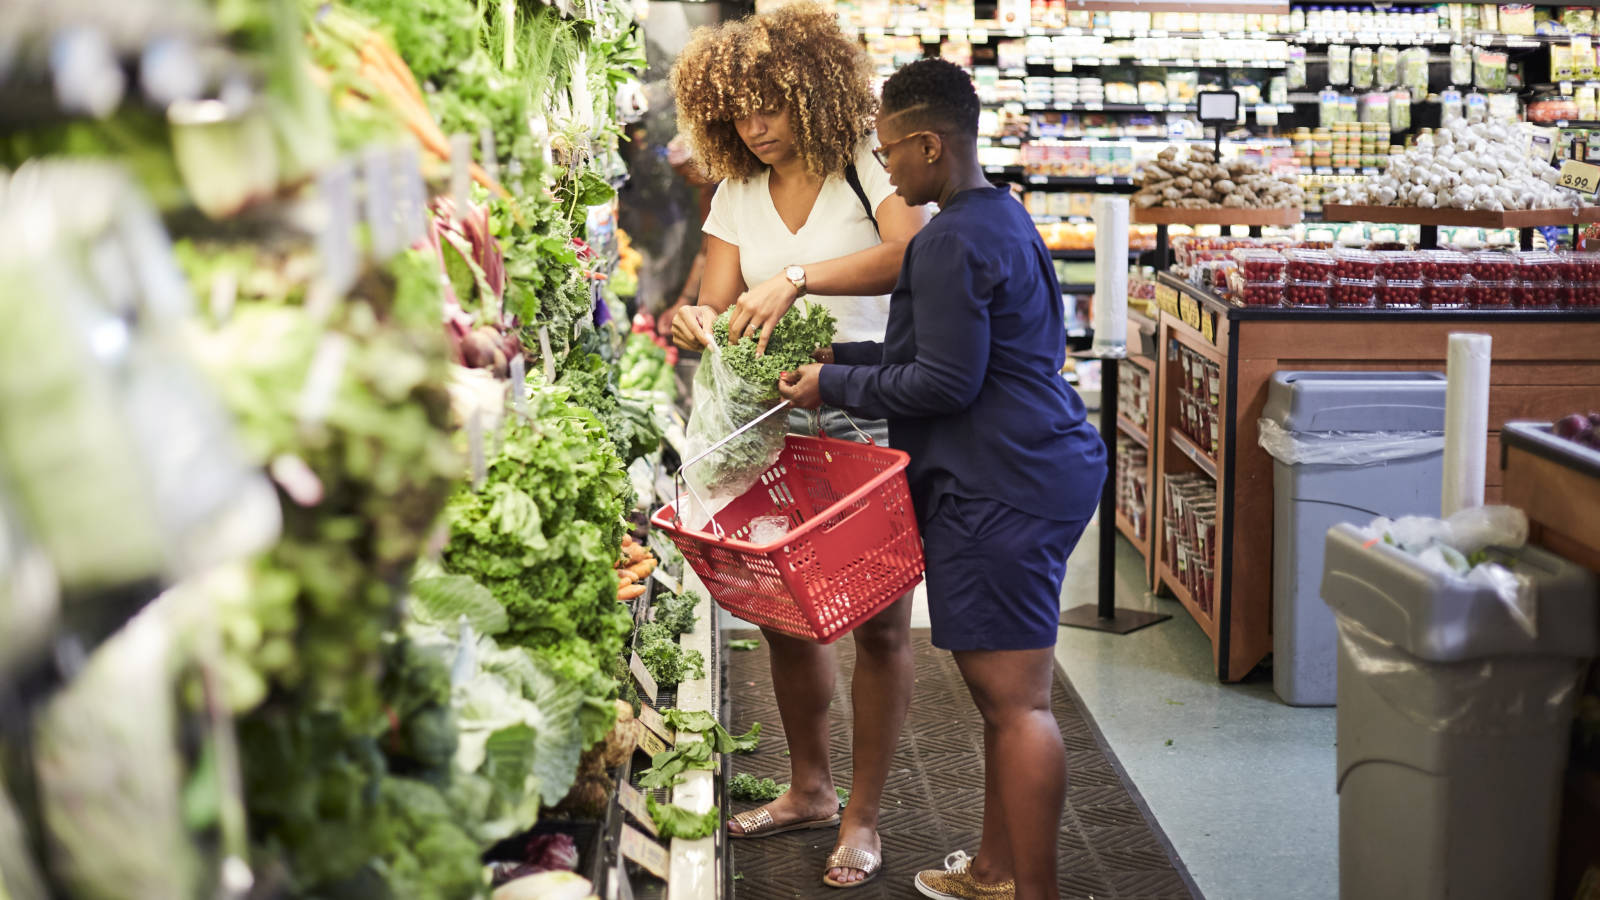 Grocery Shopping Hacks Without Using Coupons | Discover